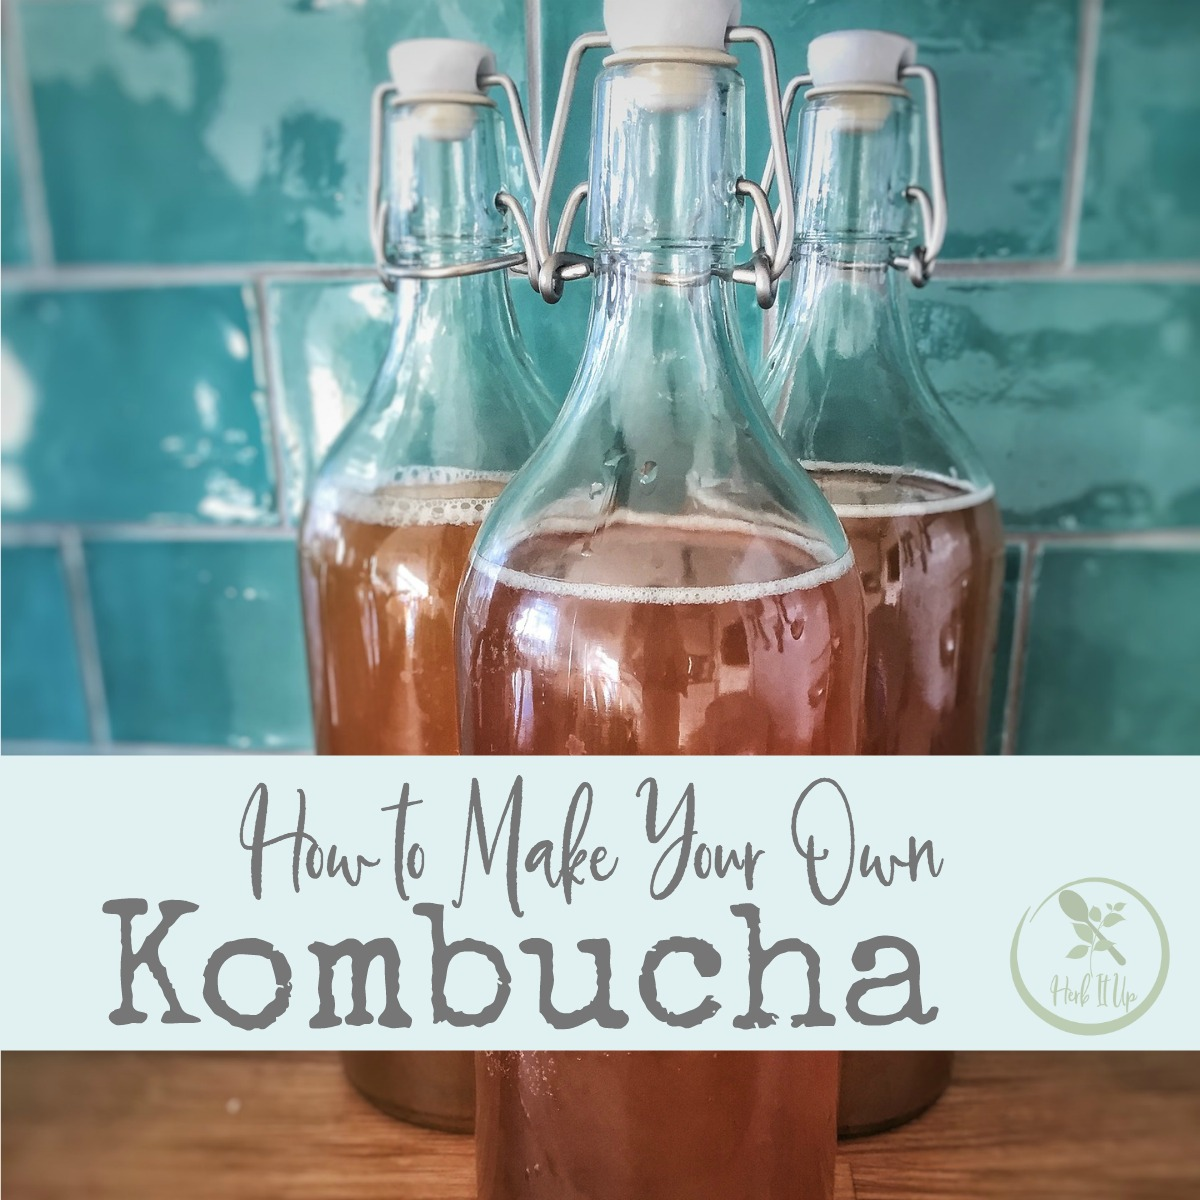 Learn how to make your own kombucha right here.